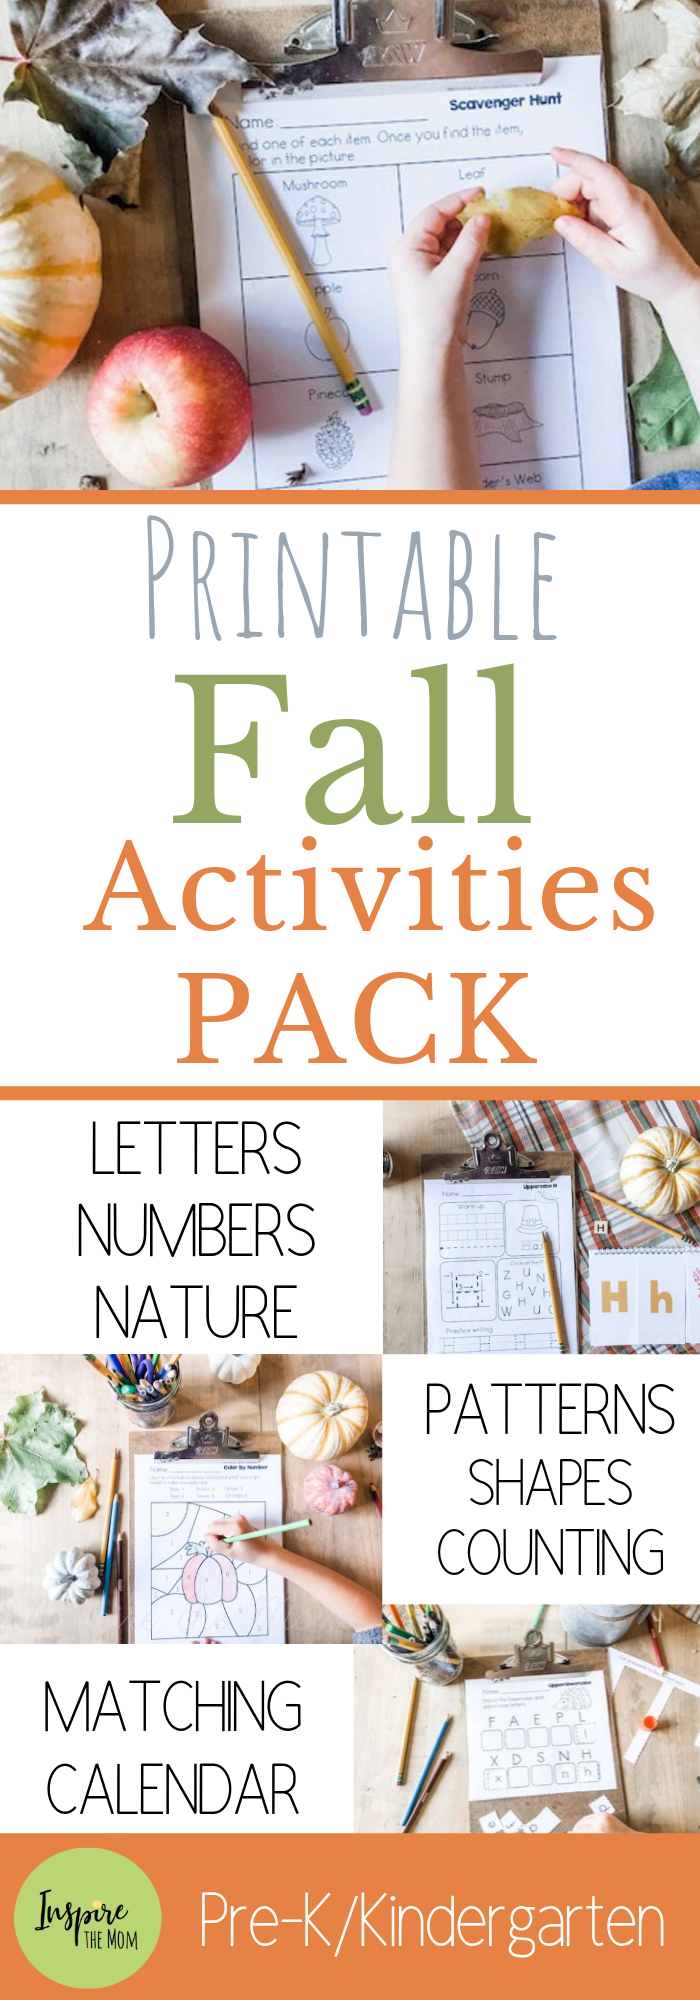 Fall Activities Pack Awesome,Huge, Fall Activities Pack for Pre-k and Kindergarten! Over 100 Printa